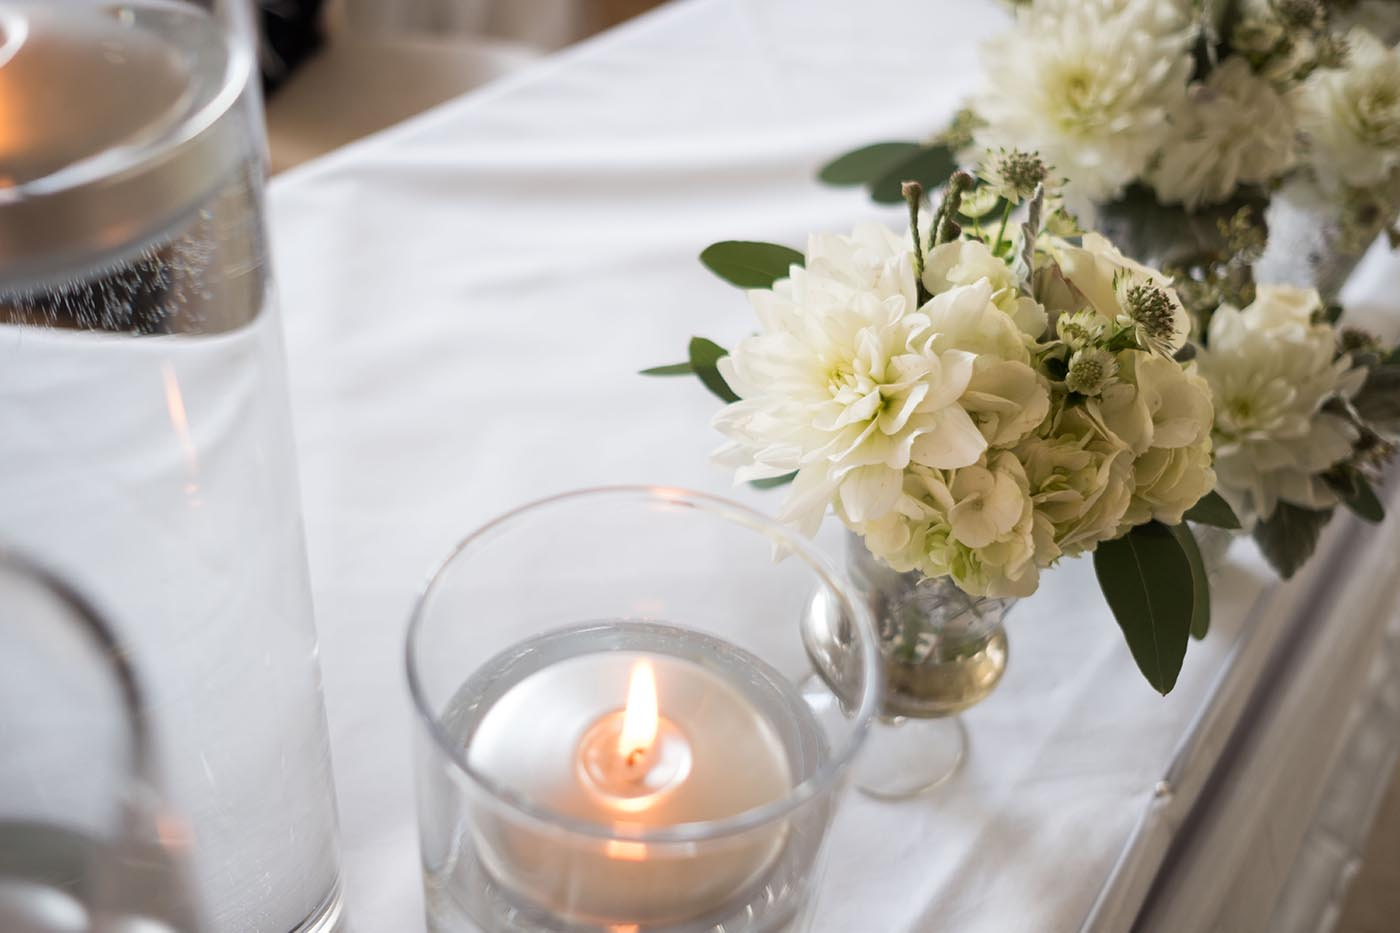 floral wedding table decor with white linen